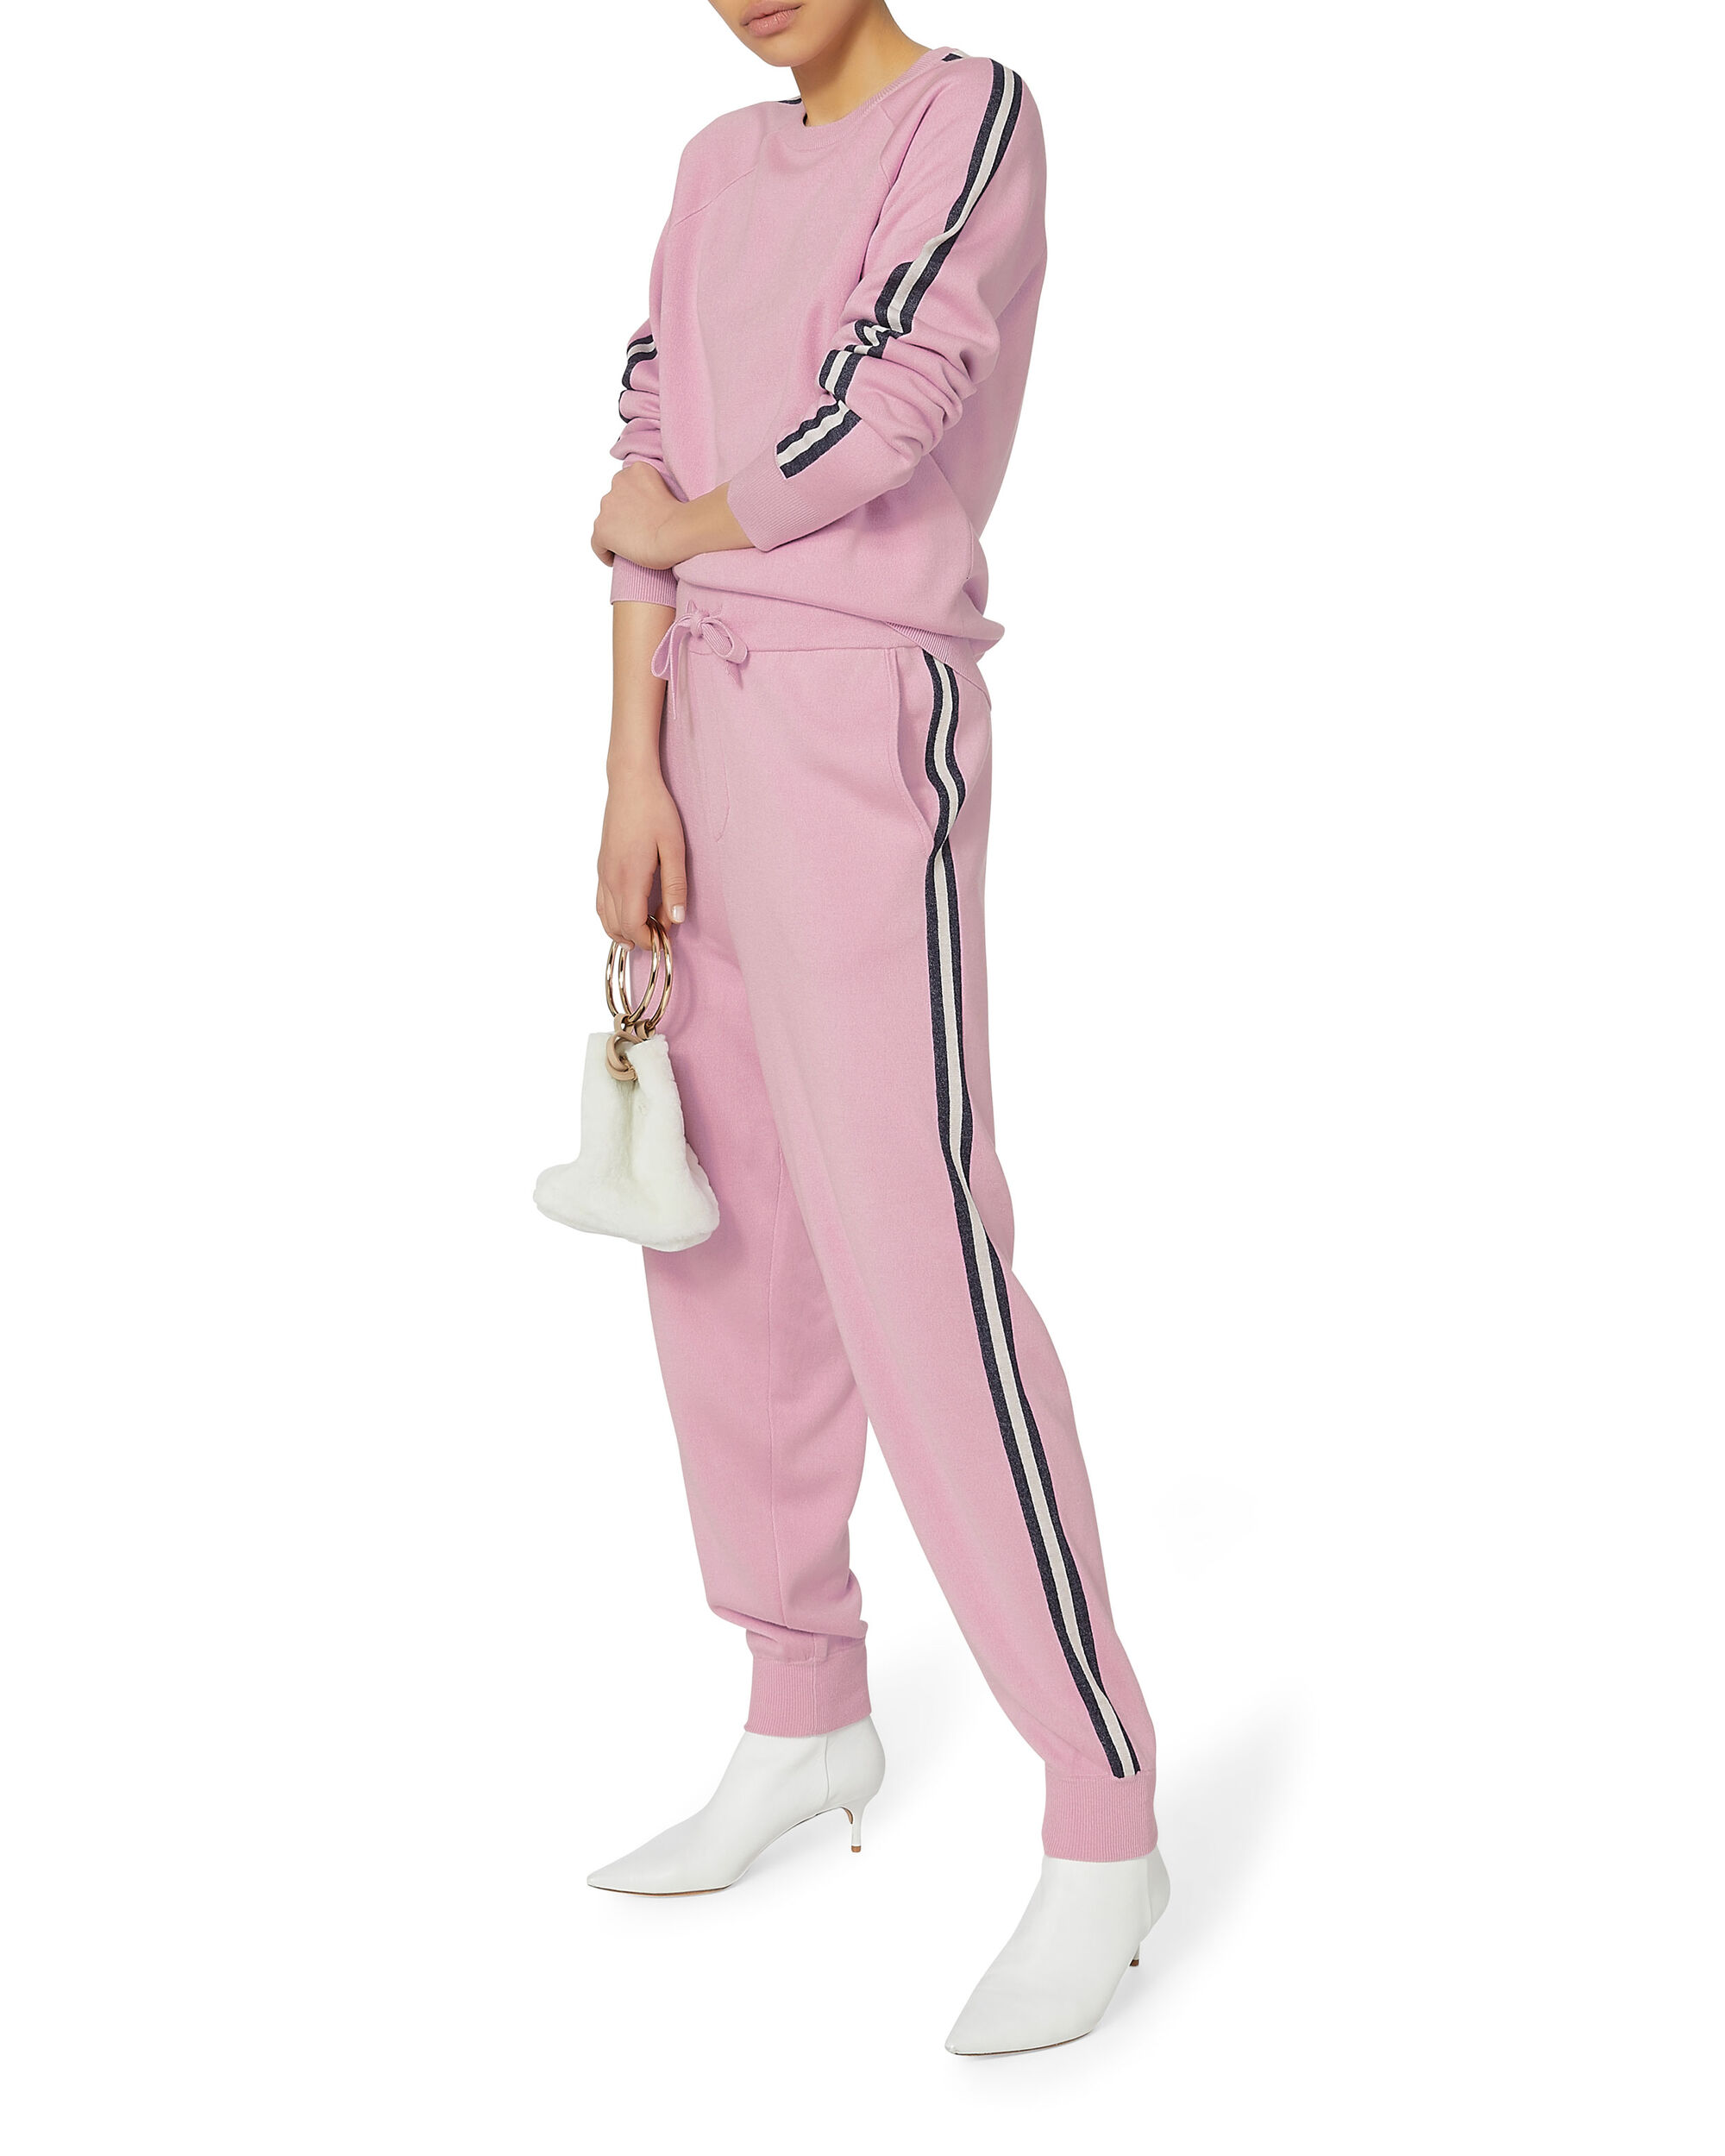 Missy Moscow Tracksuit Set, WHITE, hi-res